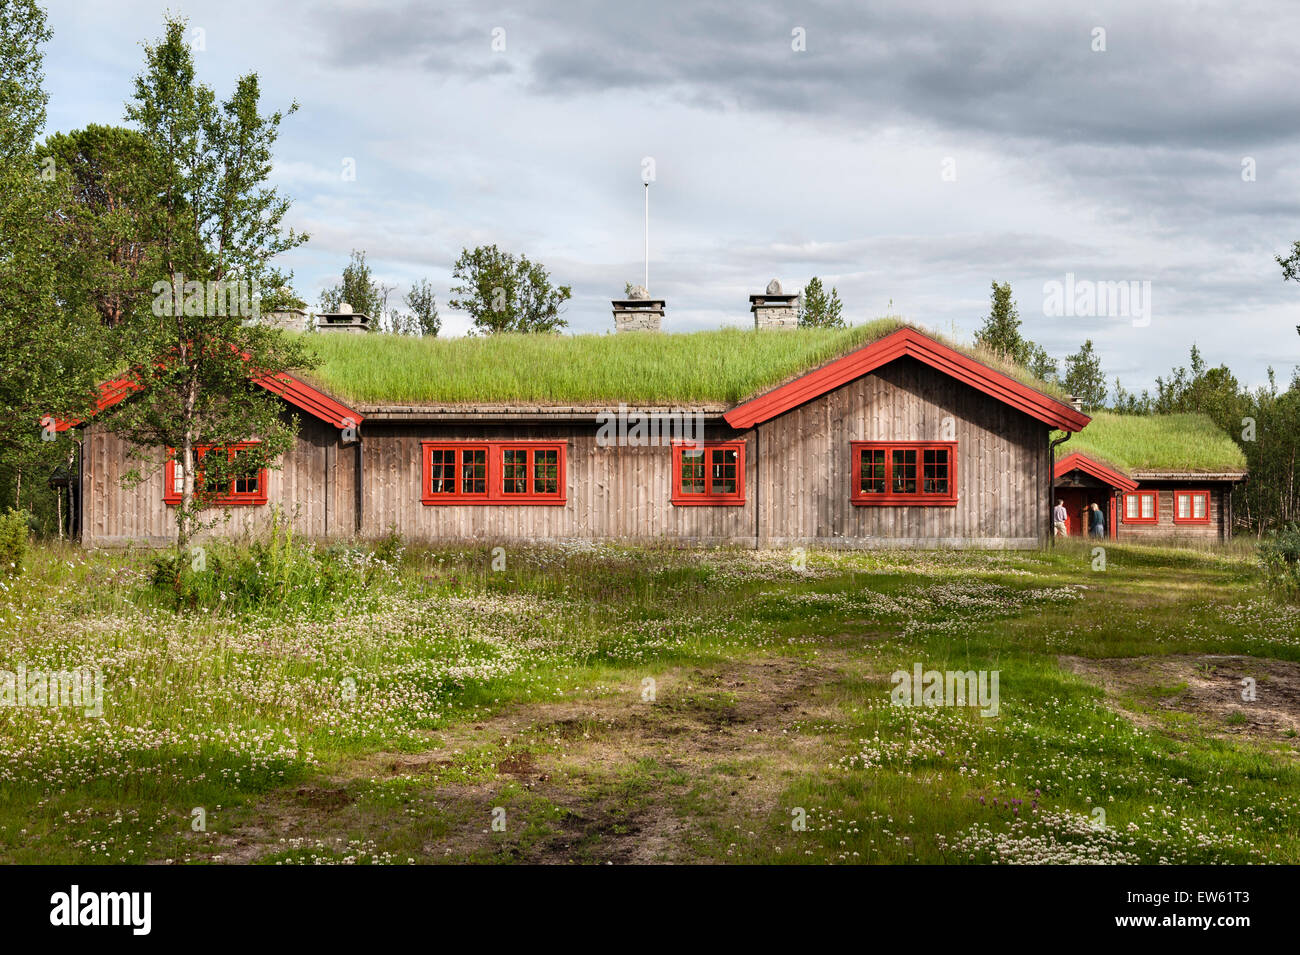 Norway, the Gudbrandsdalen Valley. A traditional turf roofed mountain hut (hytte) on a summer farm (saeter) - Stock Image